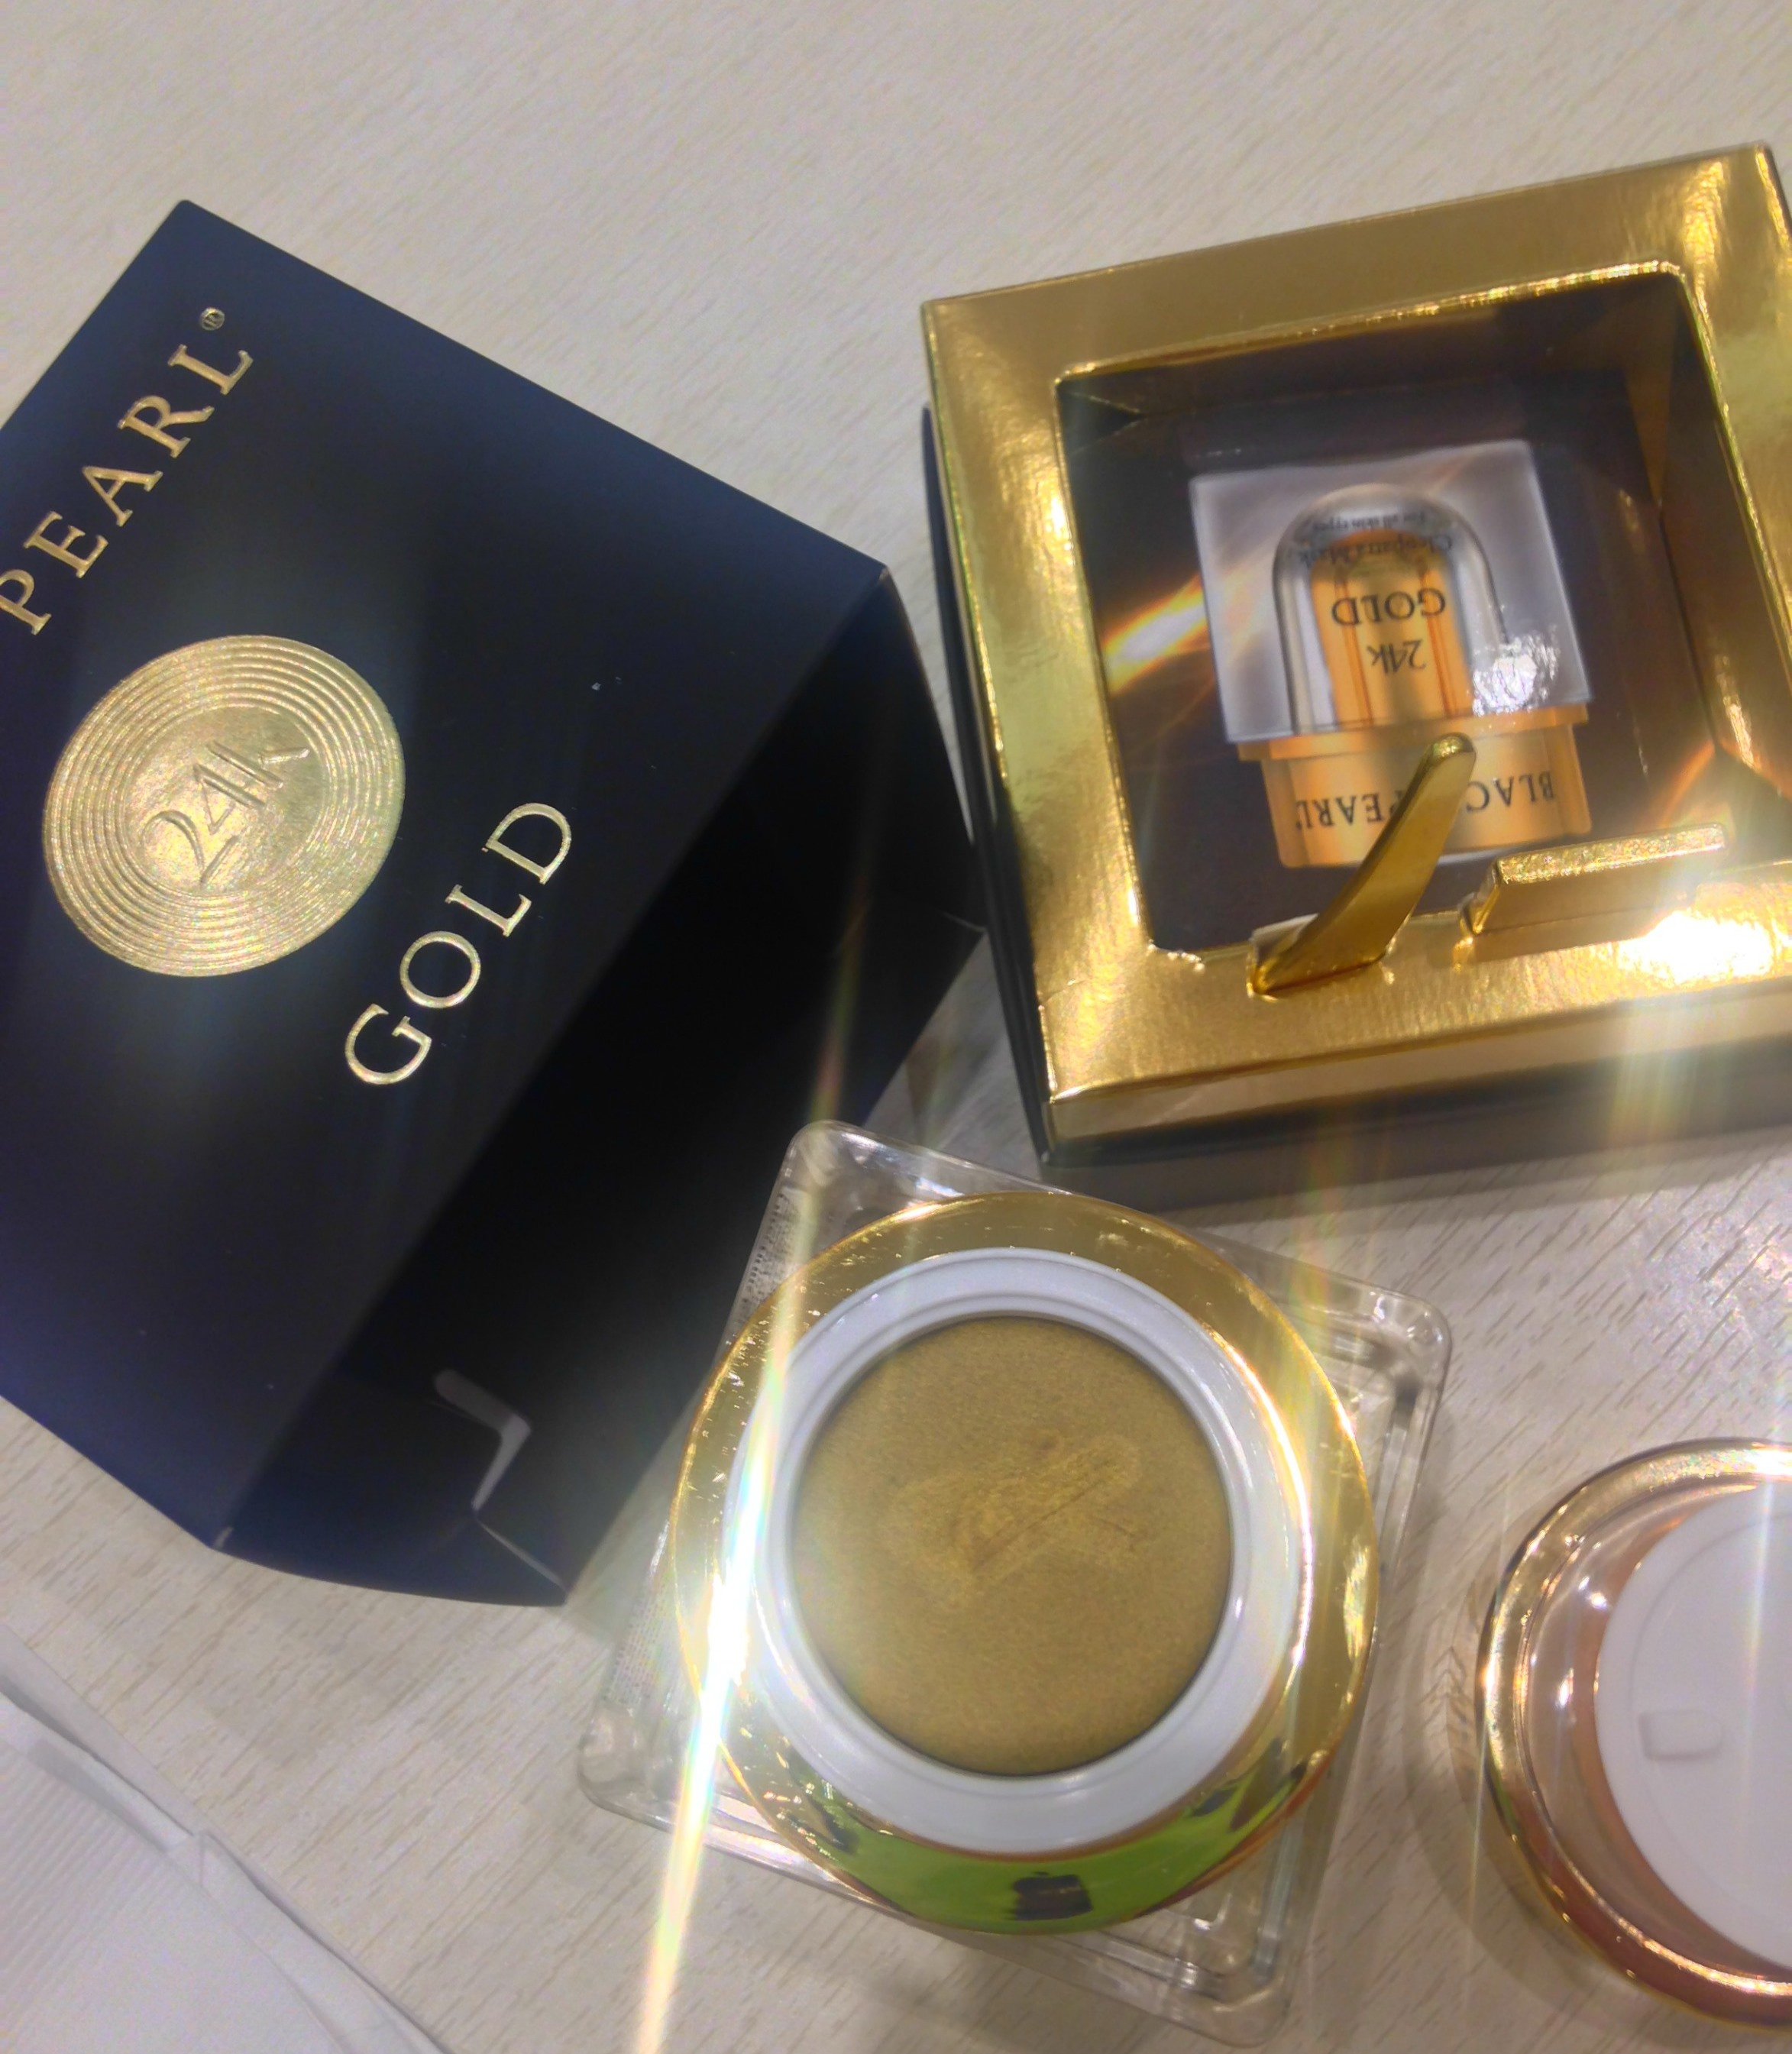 Black Pearl Cosmetics 24k Gold Mask Product Review - Top View - Philippines